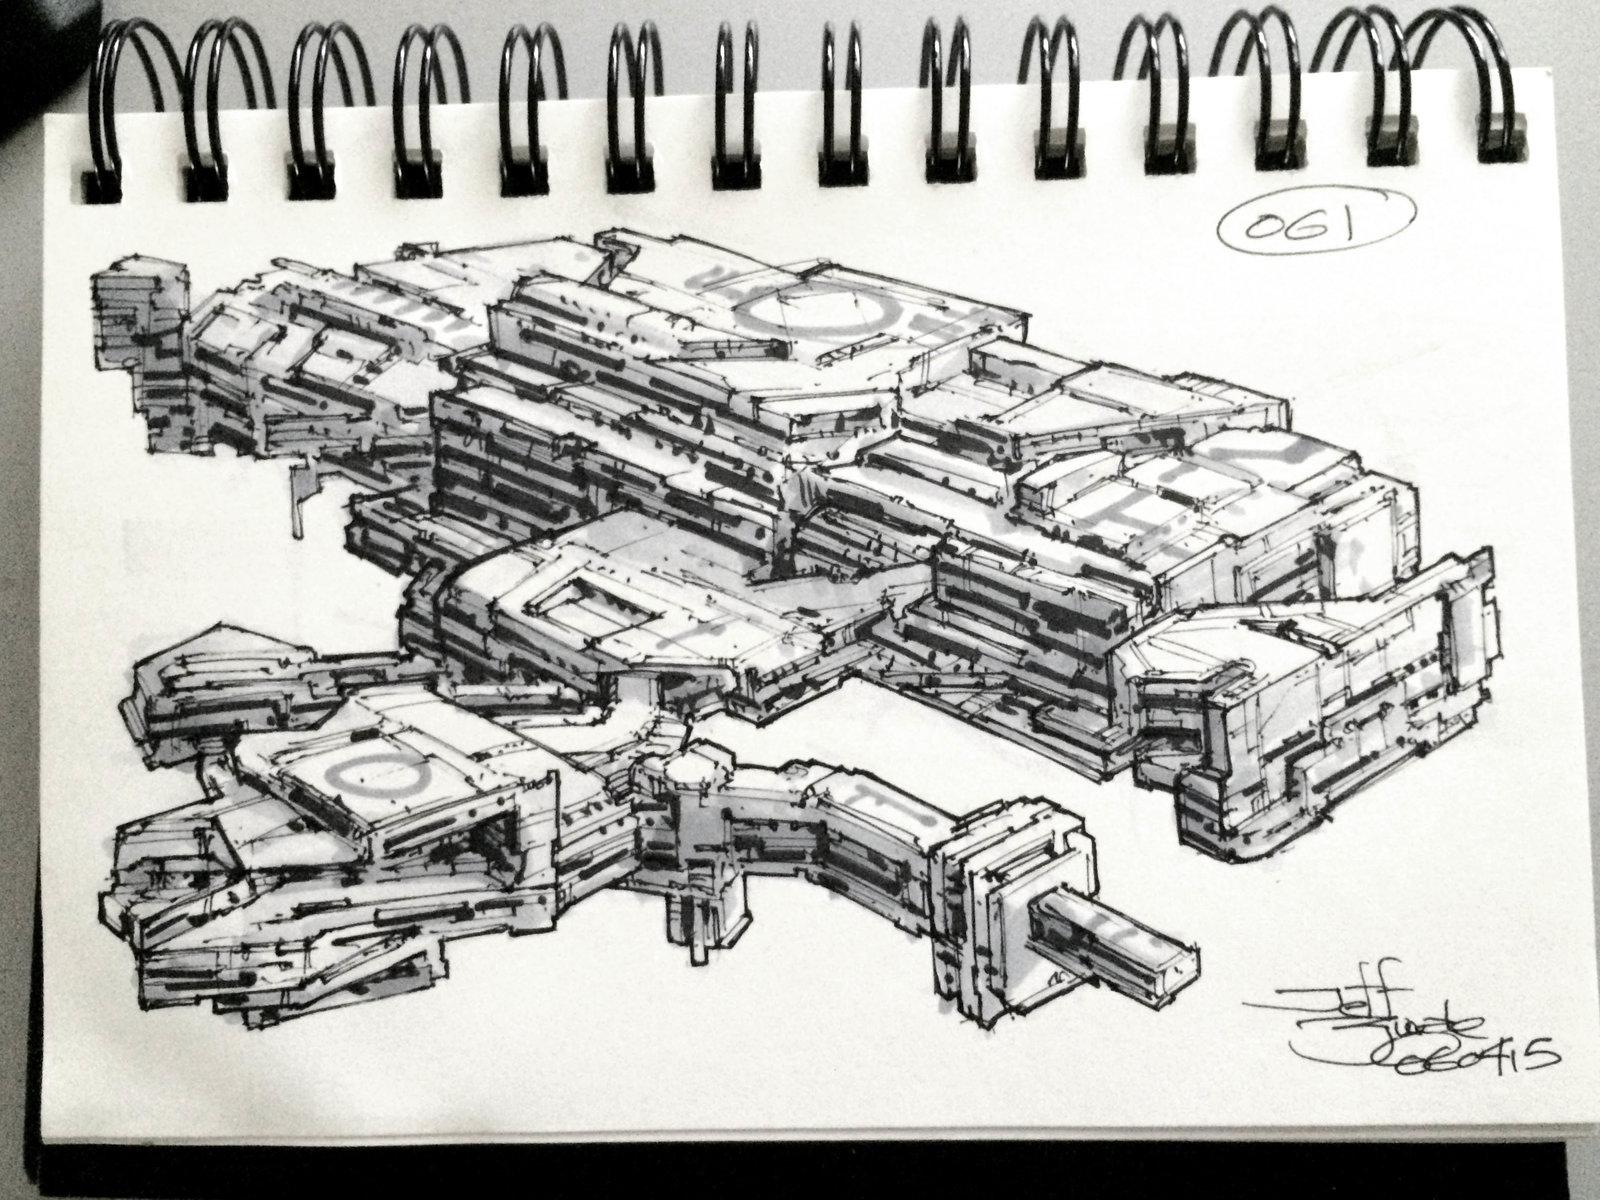 SpaceshipADay 061